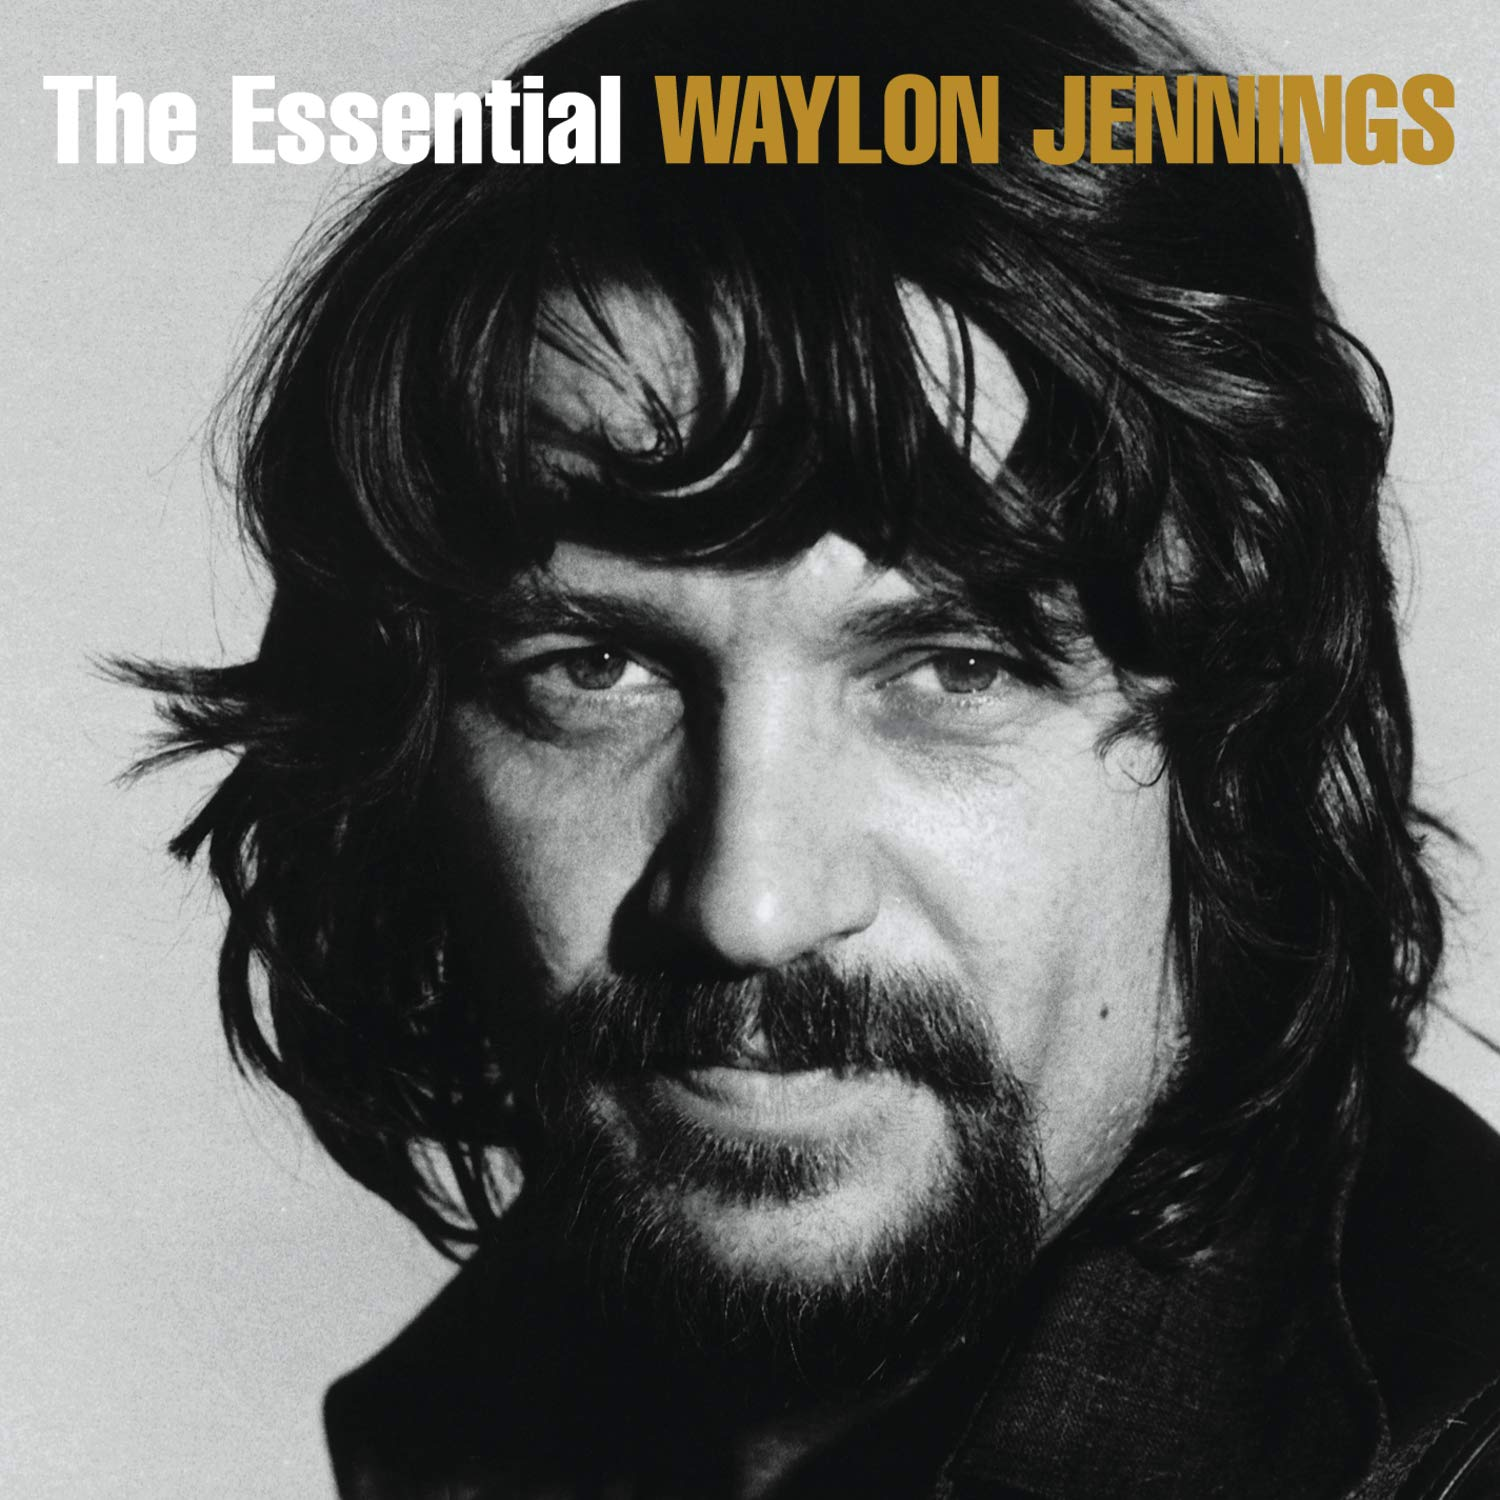 The Essential Waylon Jennings by Legacy